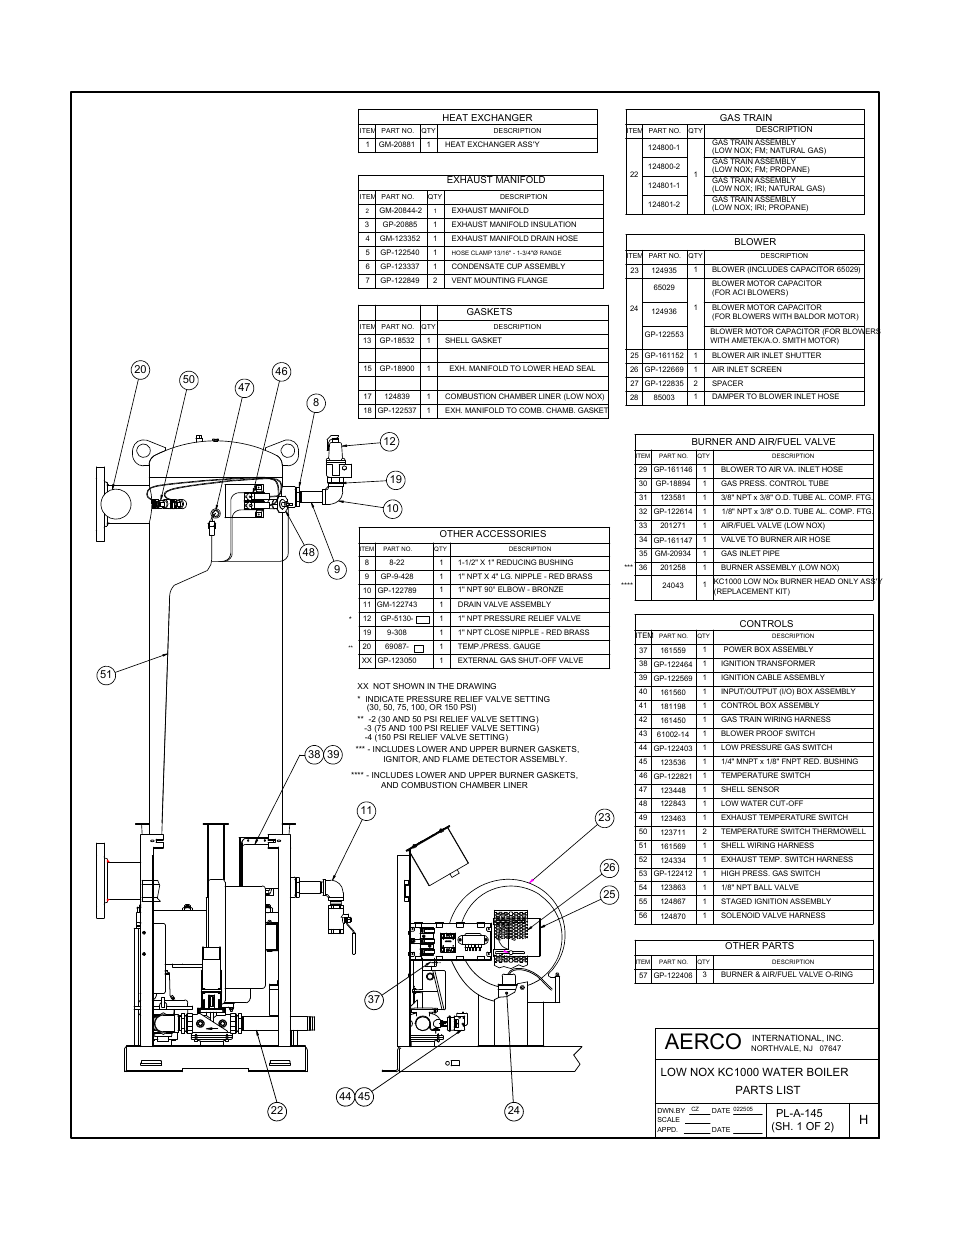 Appendix f, Aerco, Parts list low nox kc1000 water boiler